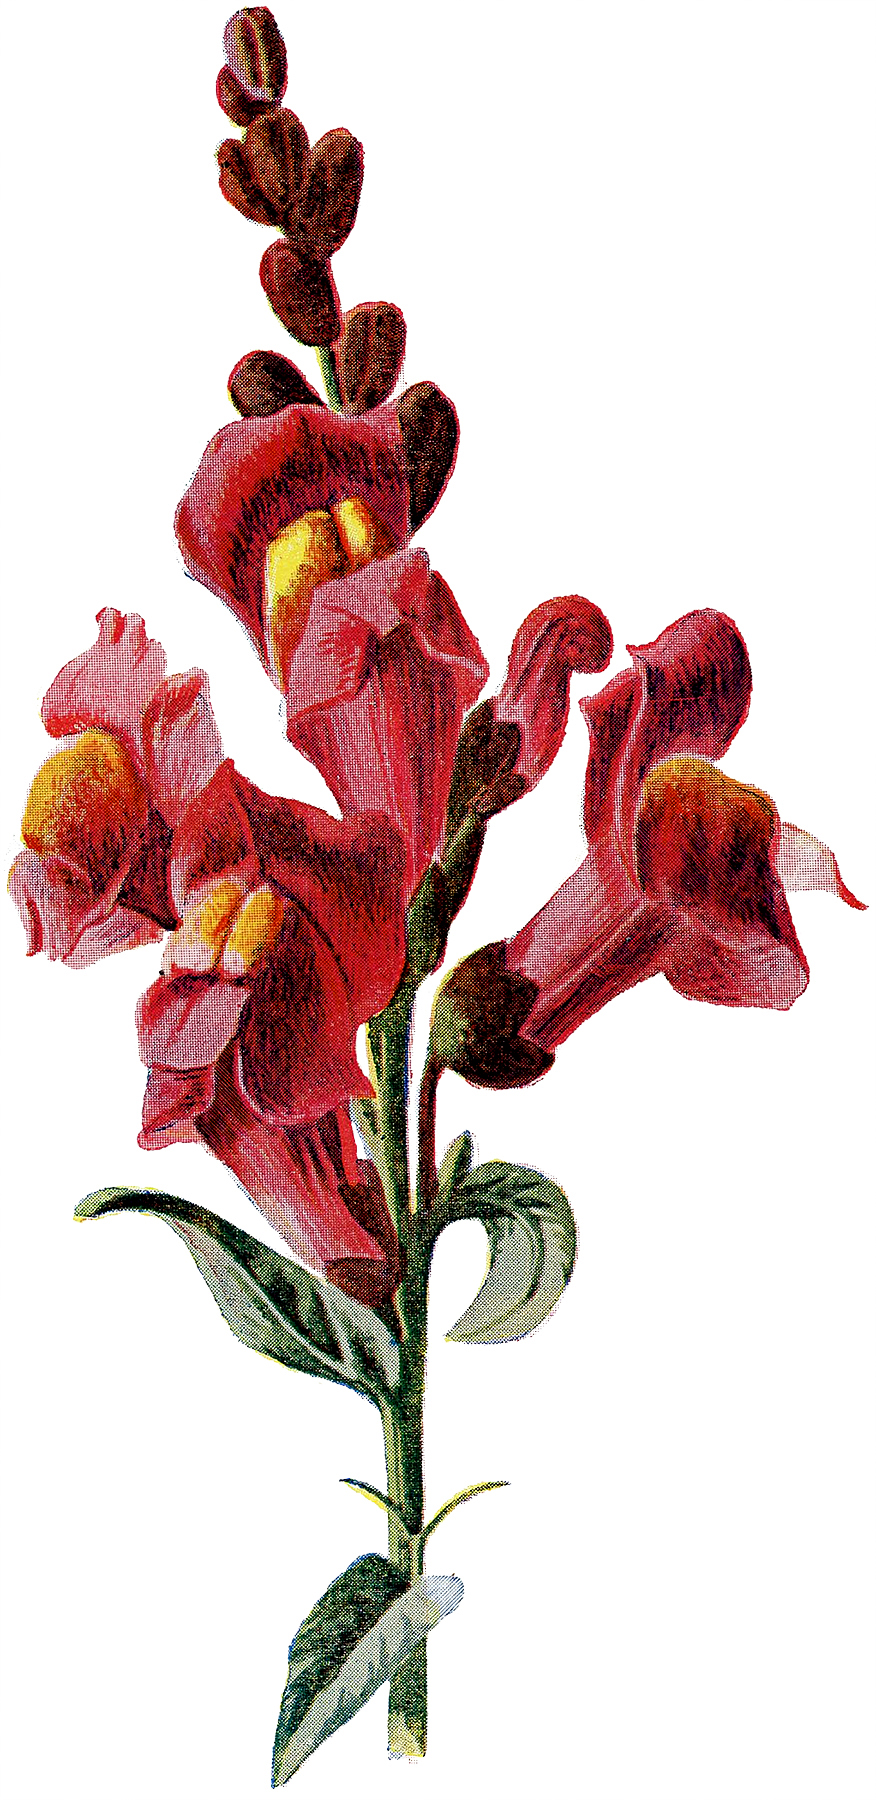 Vintage Tall Stem of Showy Red Flowers Botanical Image